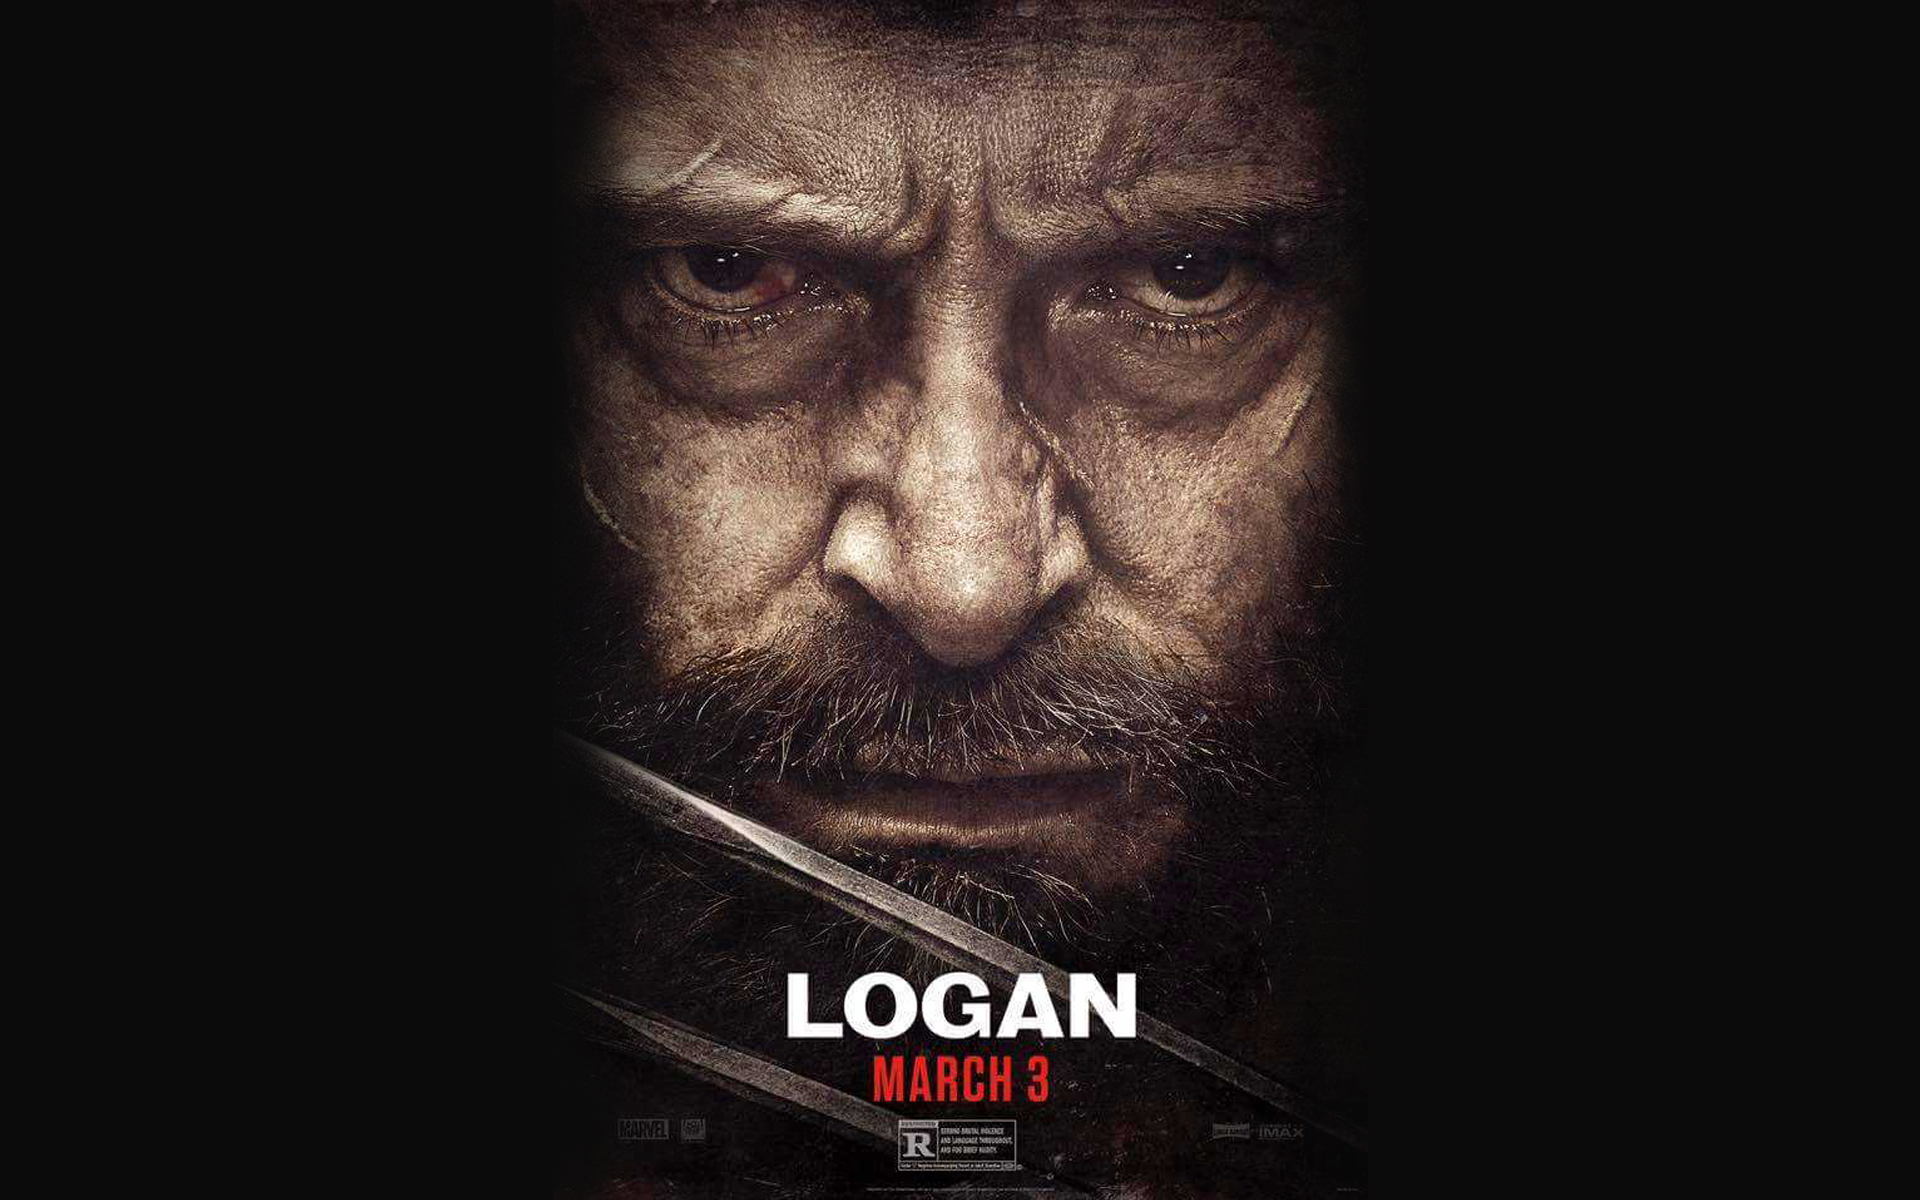 Logan  Movie cast, photos, wallpapers, HD Images Download 1920x1200